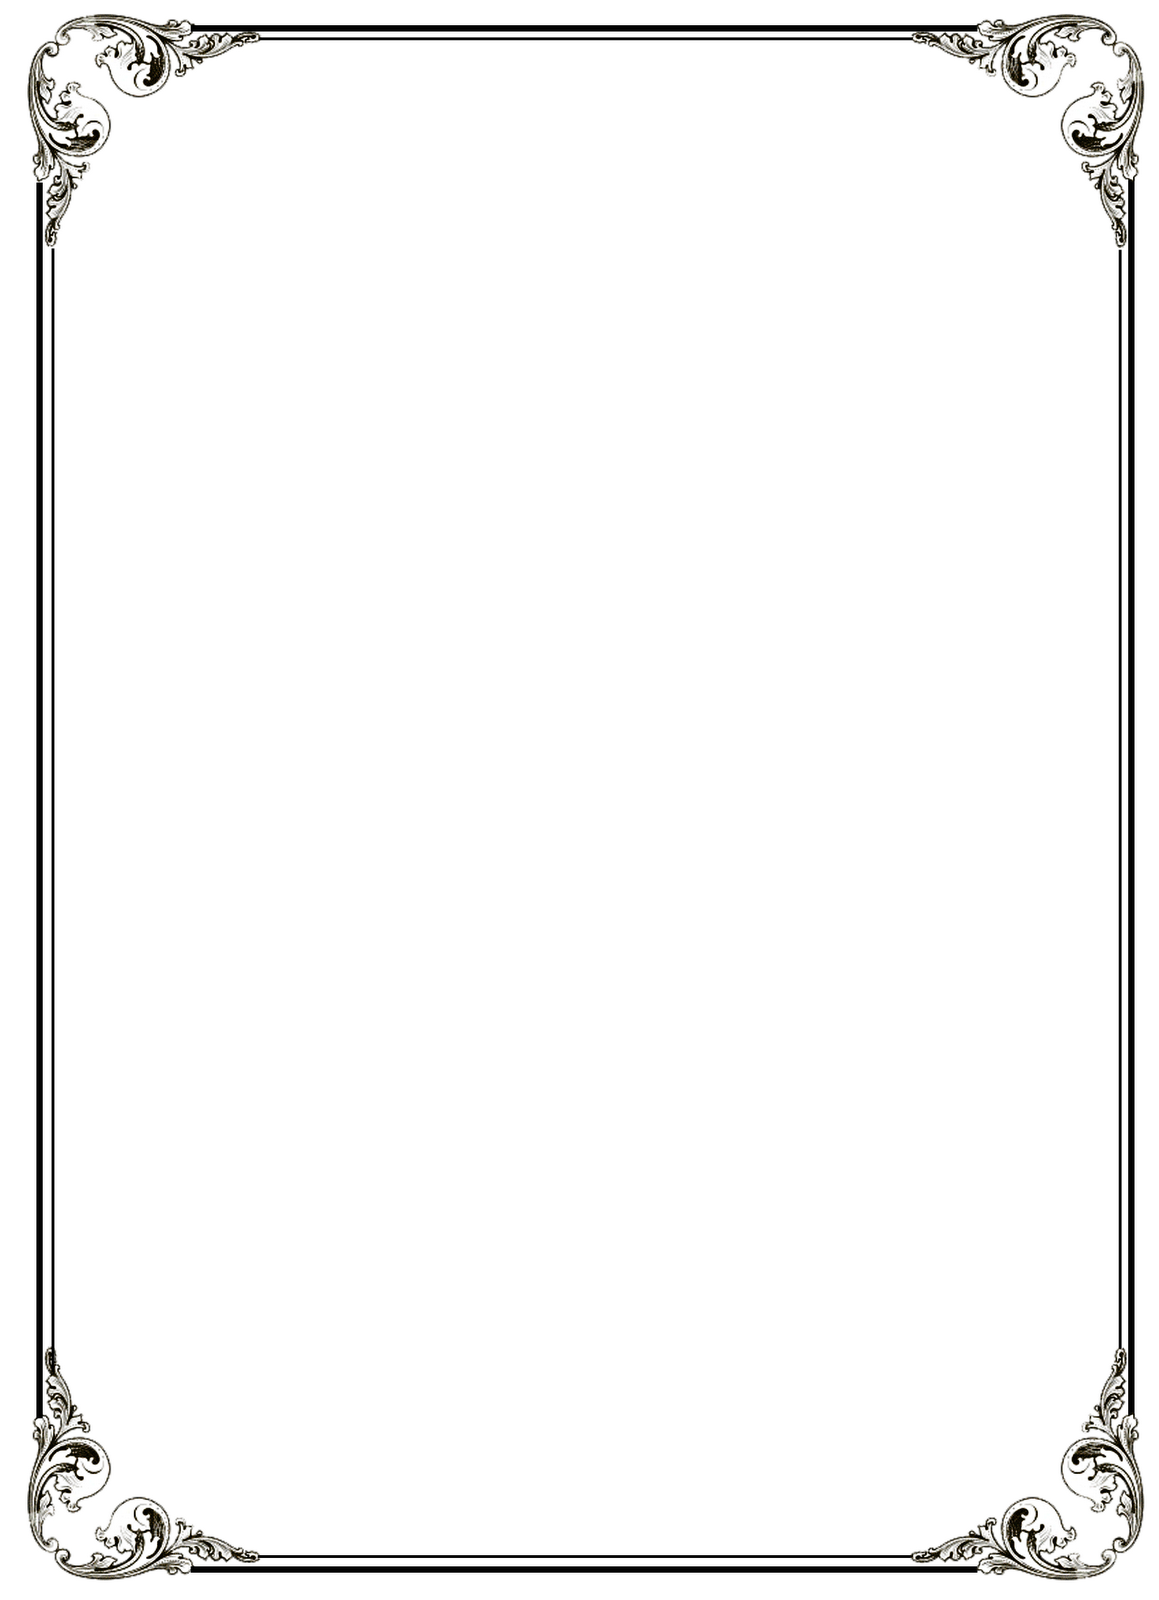 Free PNG Frames And Page Borders Transparent Frames And Page.